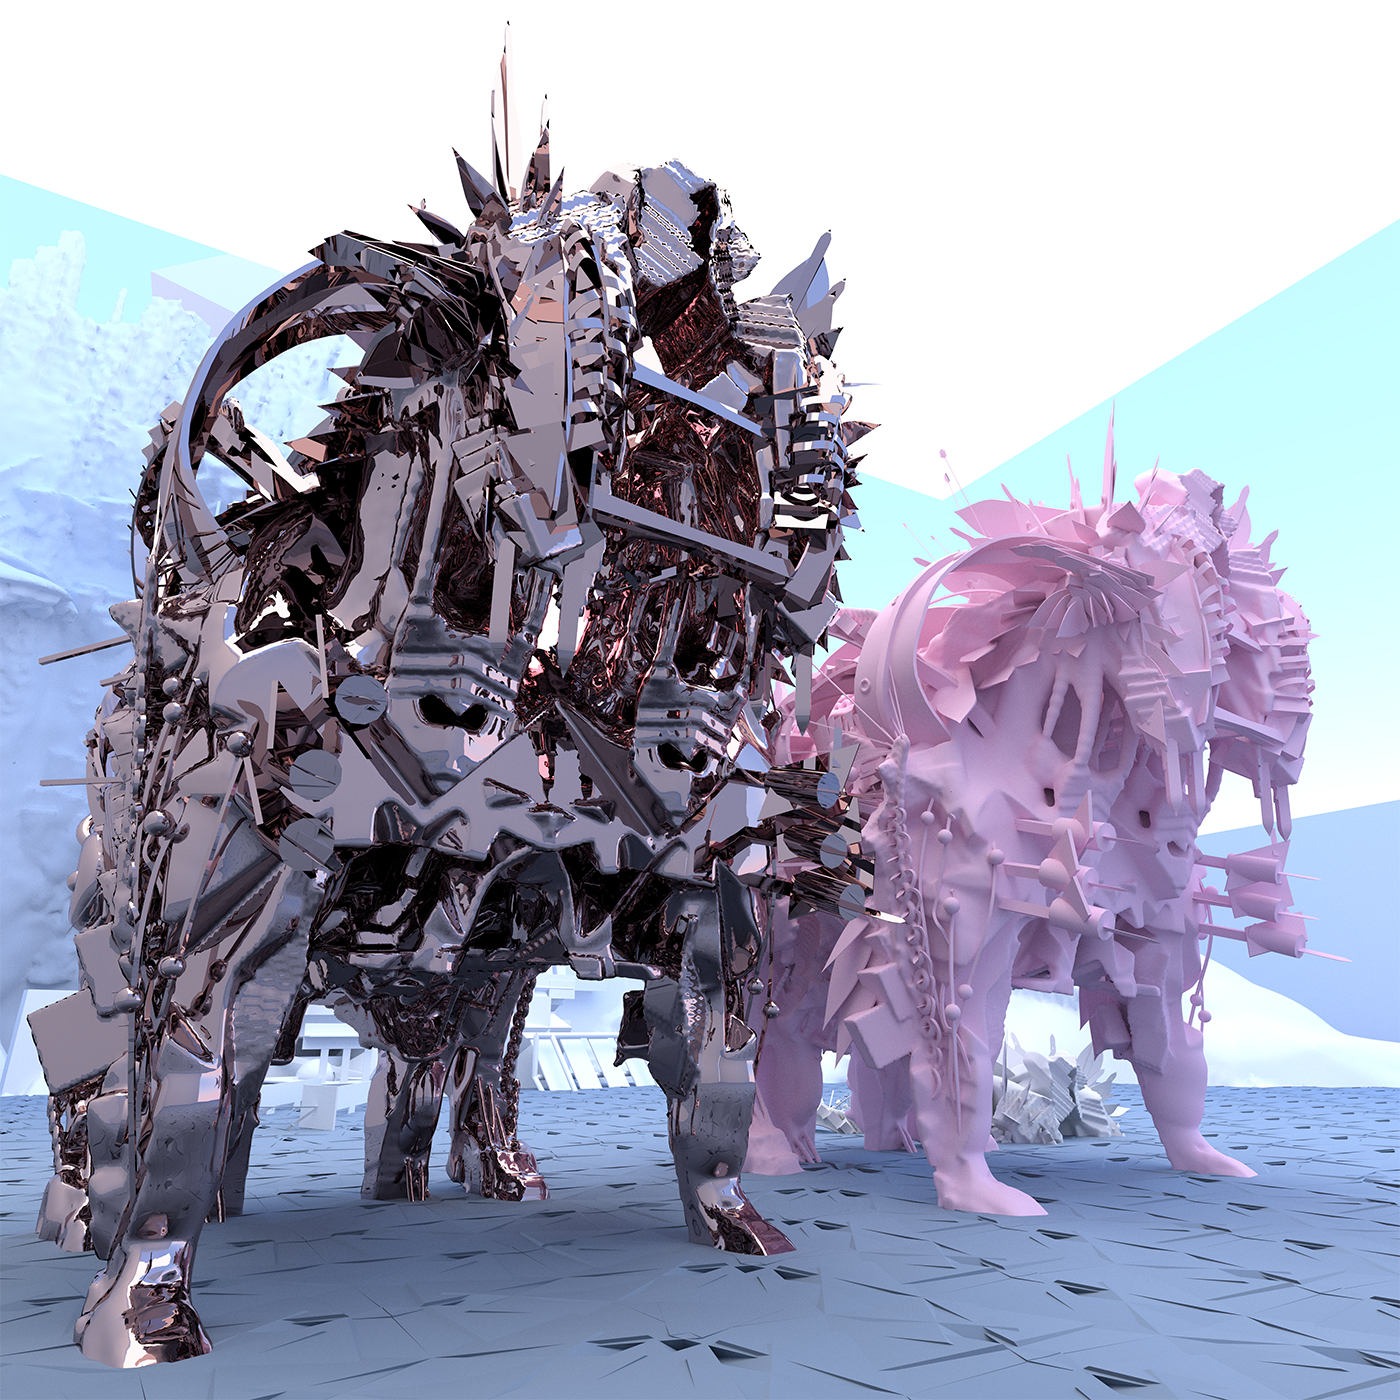 Some material tests from the same horses.